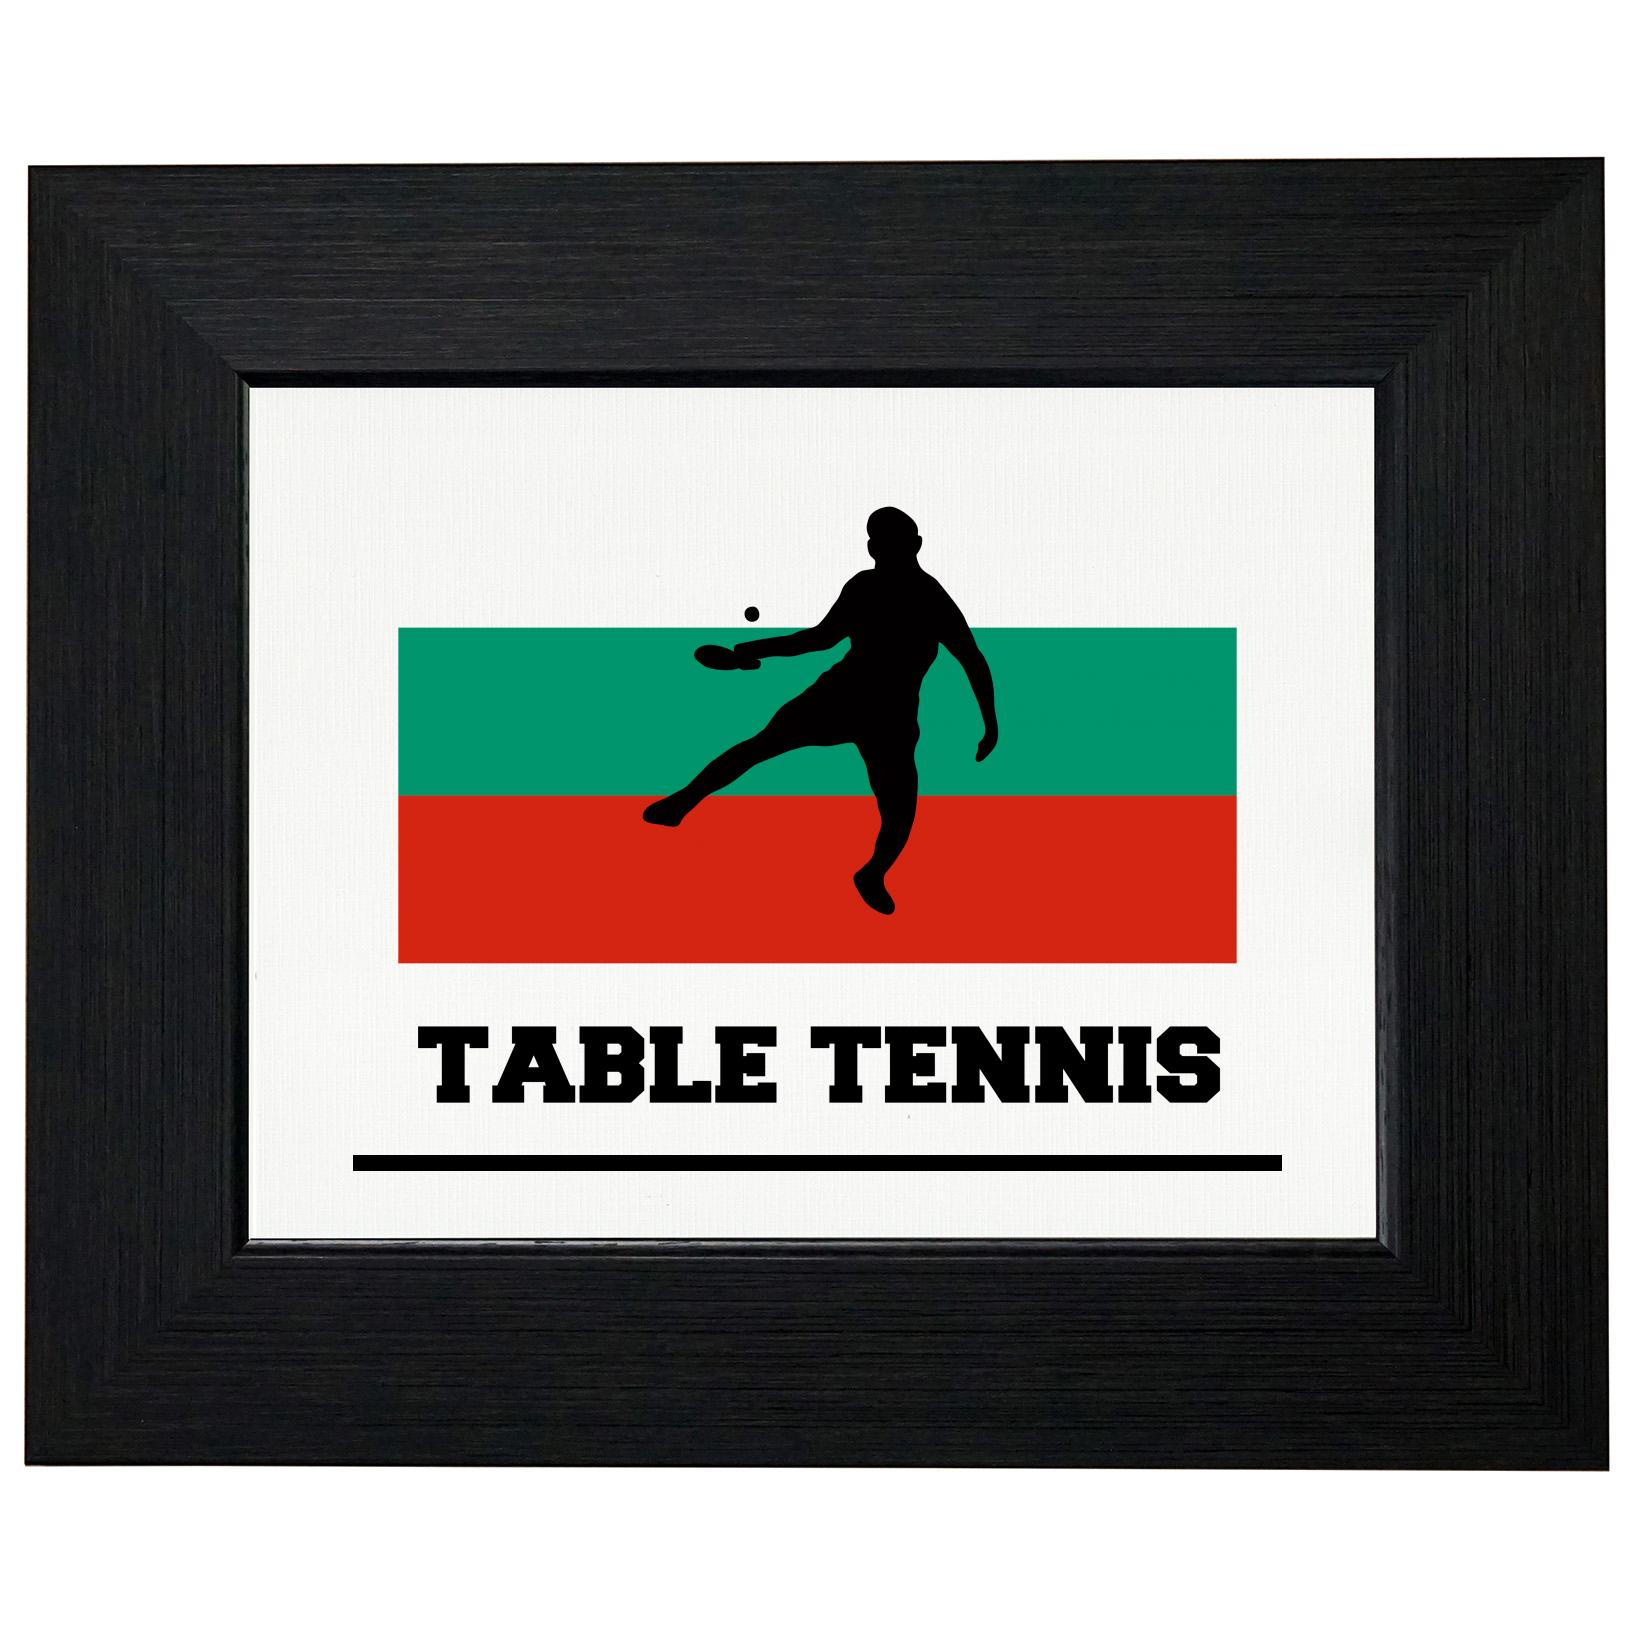 Bulgaria Olympic Ping Pong Flag Silhouette Framed Print Poster Wall or Desk Mount Options by Royal Prints